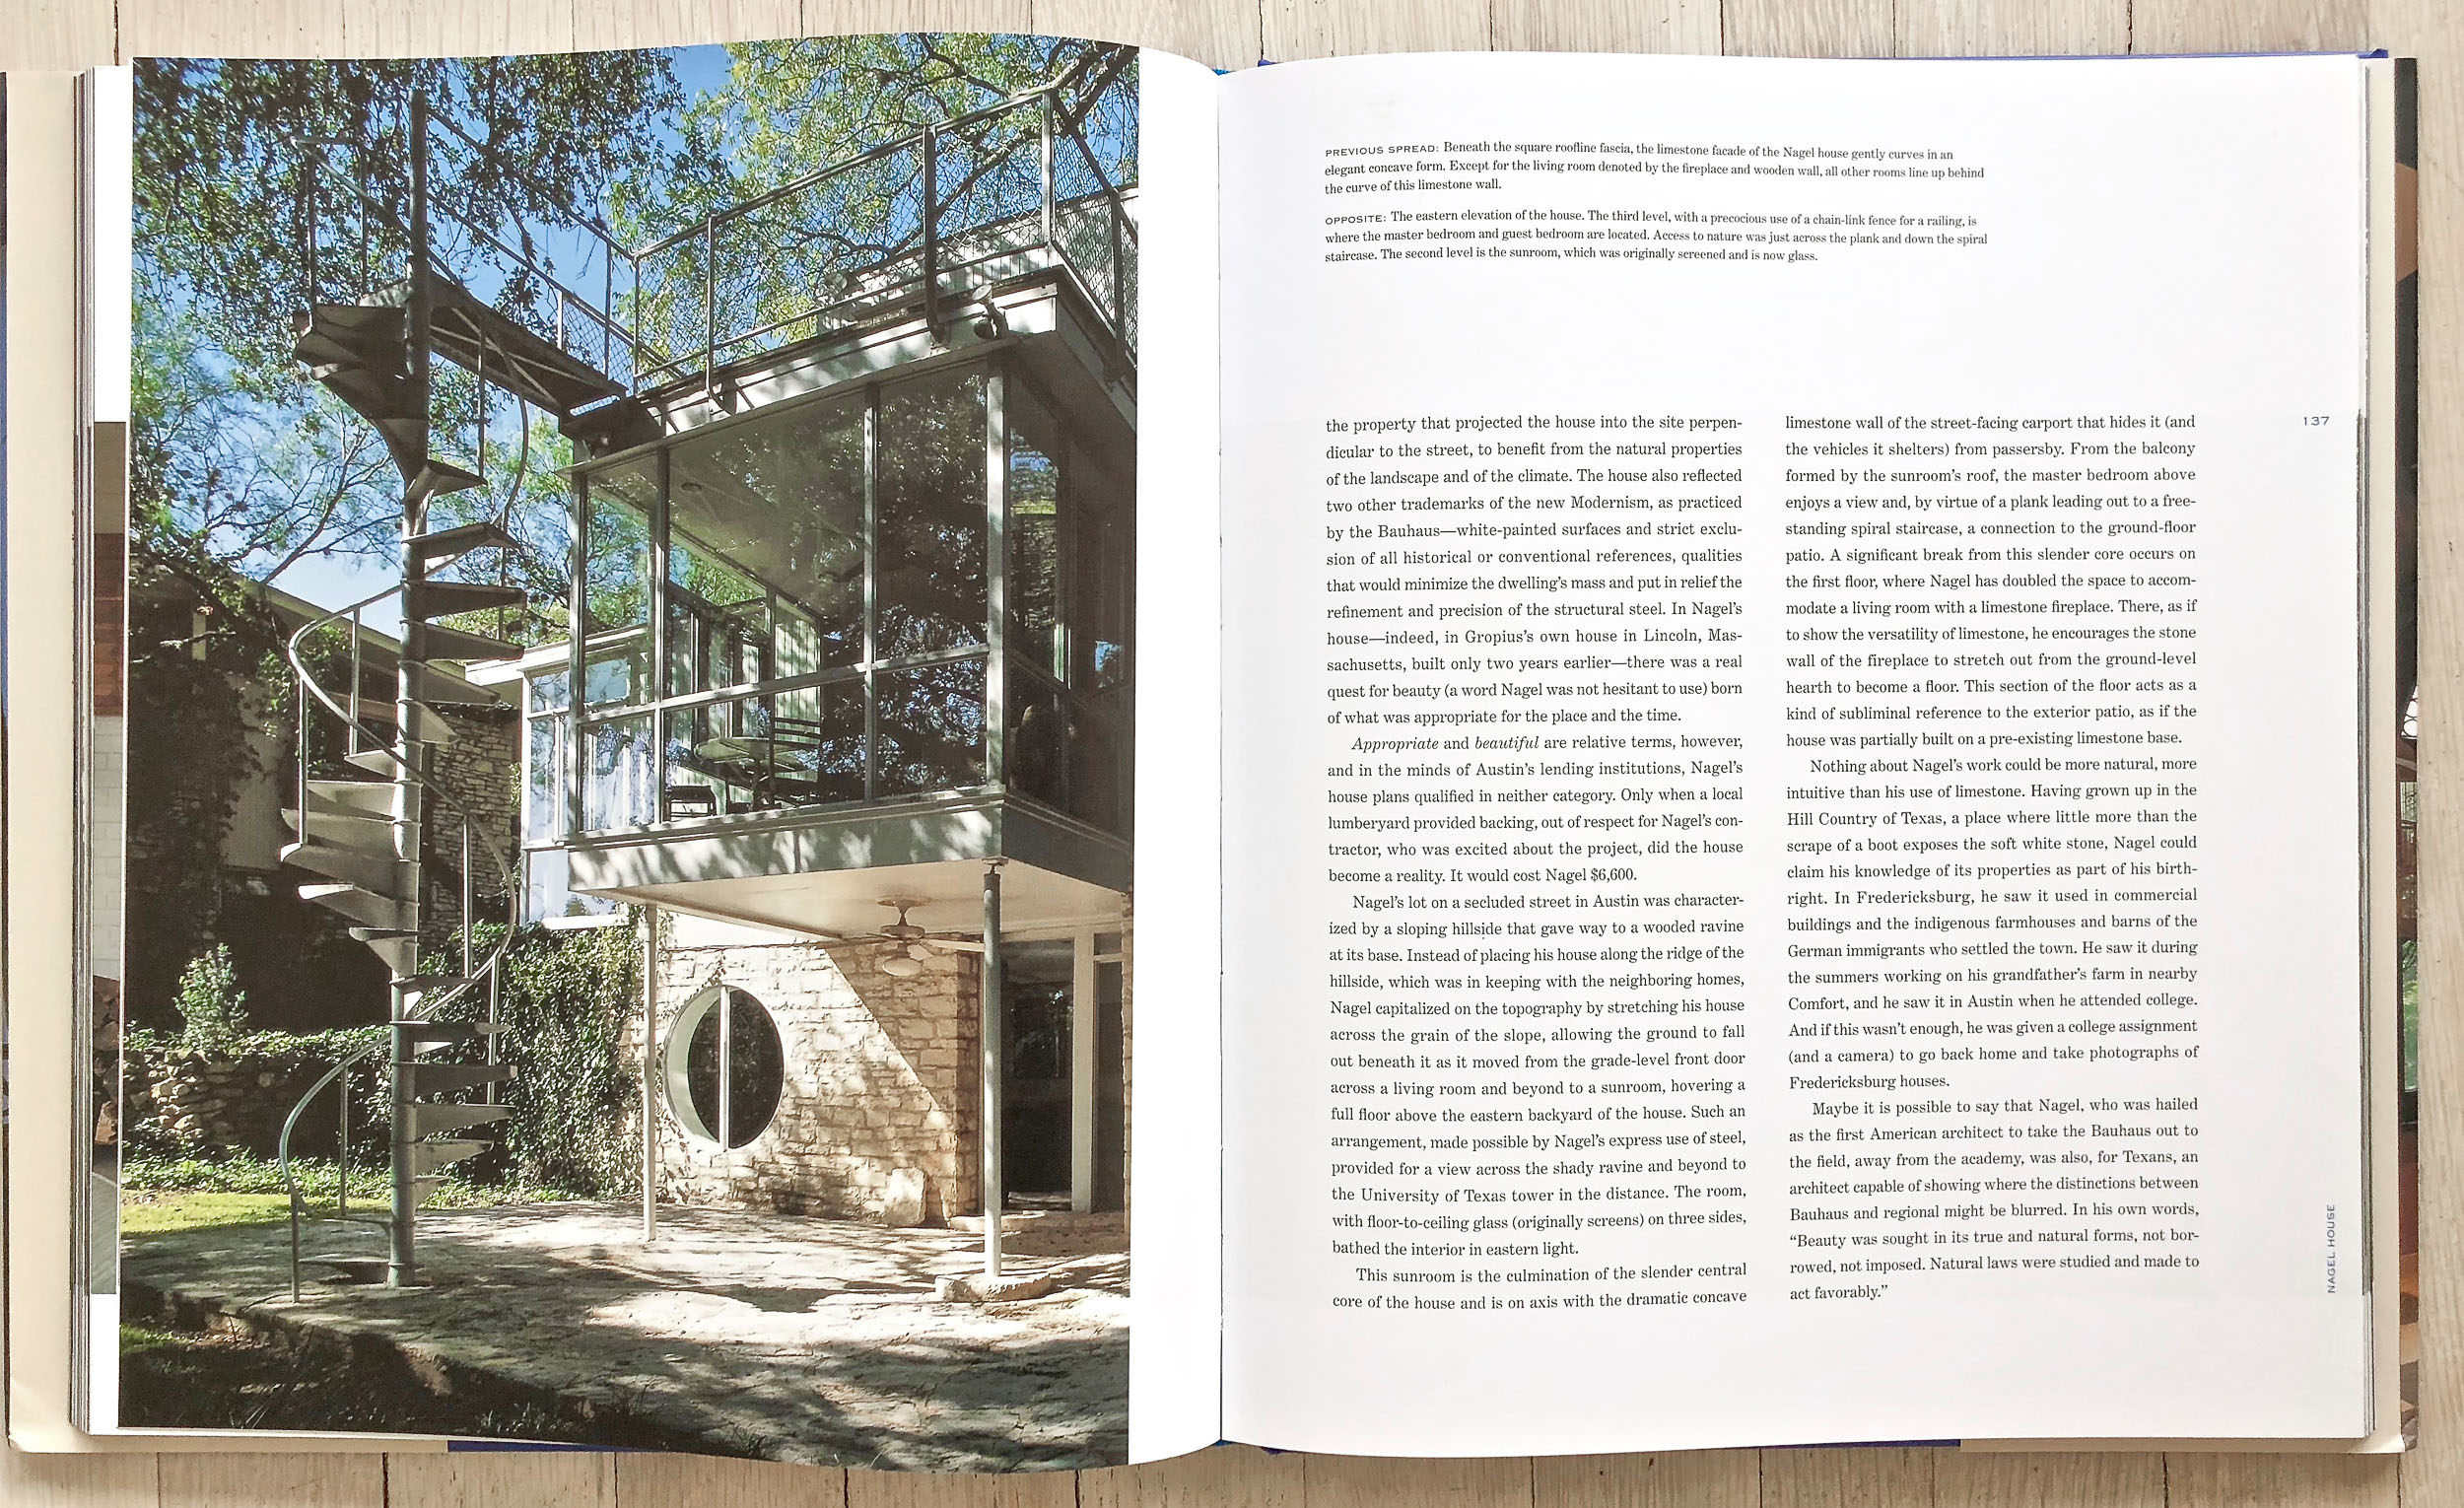 Great Houses of Texas  by Lisa Germany and Grant Mudford. Developed and Acquired by Richard Olsen. Edited by Andrea Danese. Darilyn Lowe Carnes, Graphic Design. Alison Gervais, Production Manager. Harry N. Abrams, Inc., Publishers.